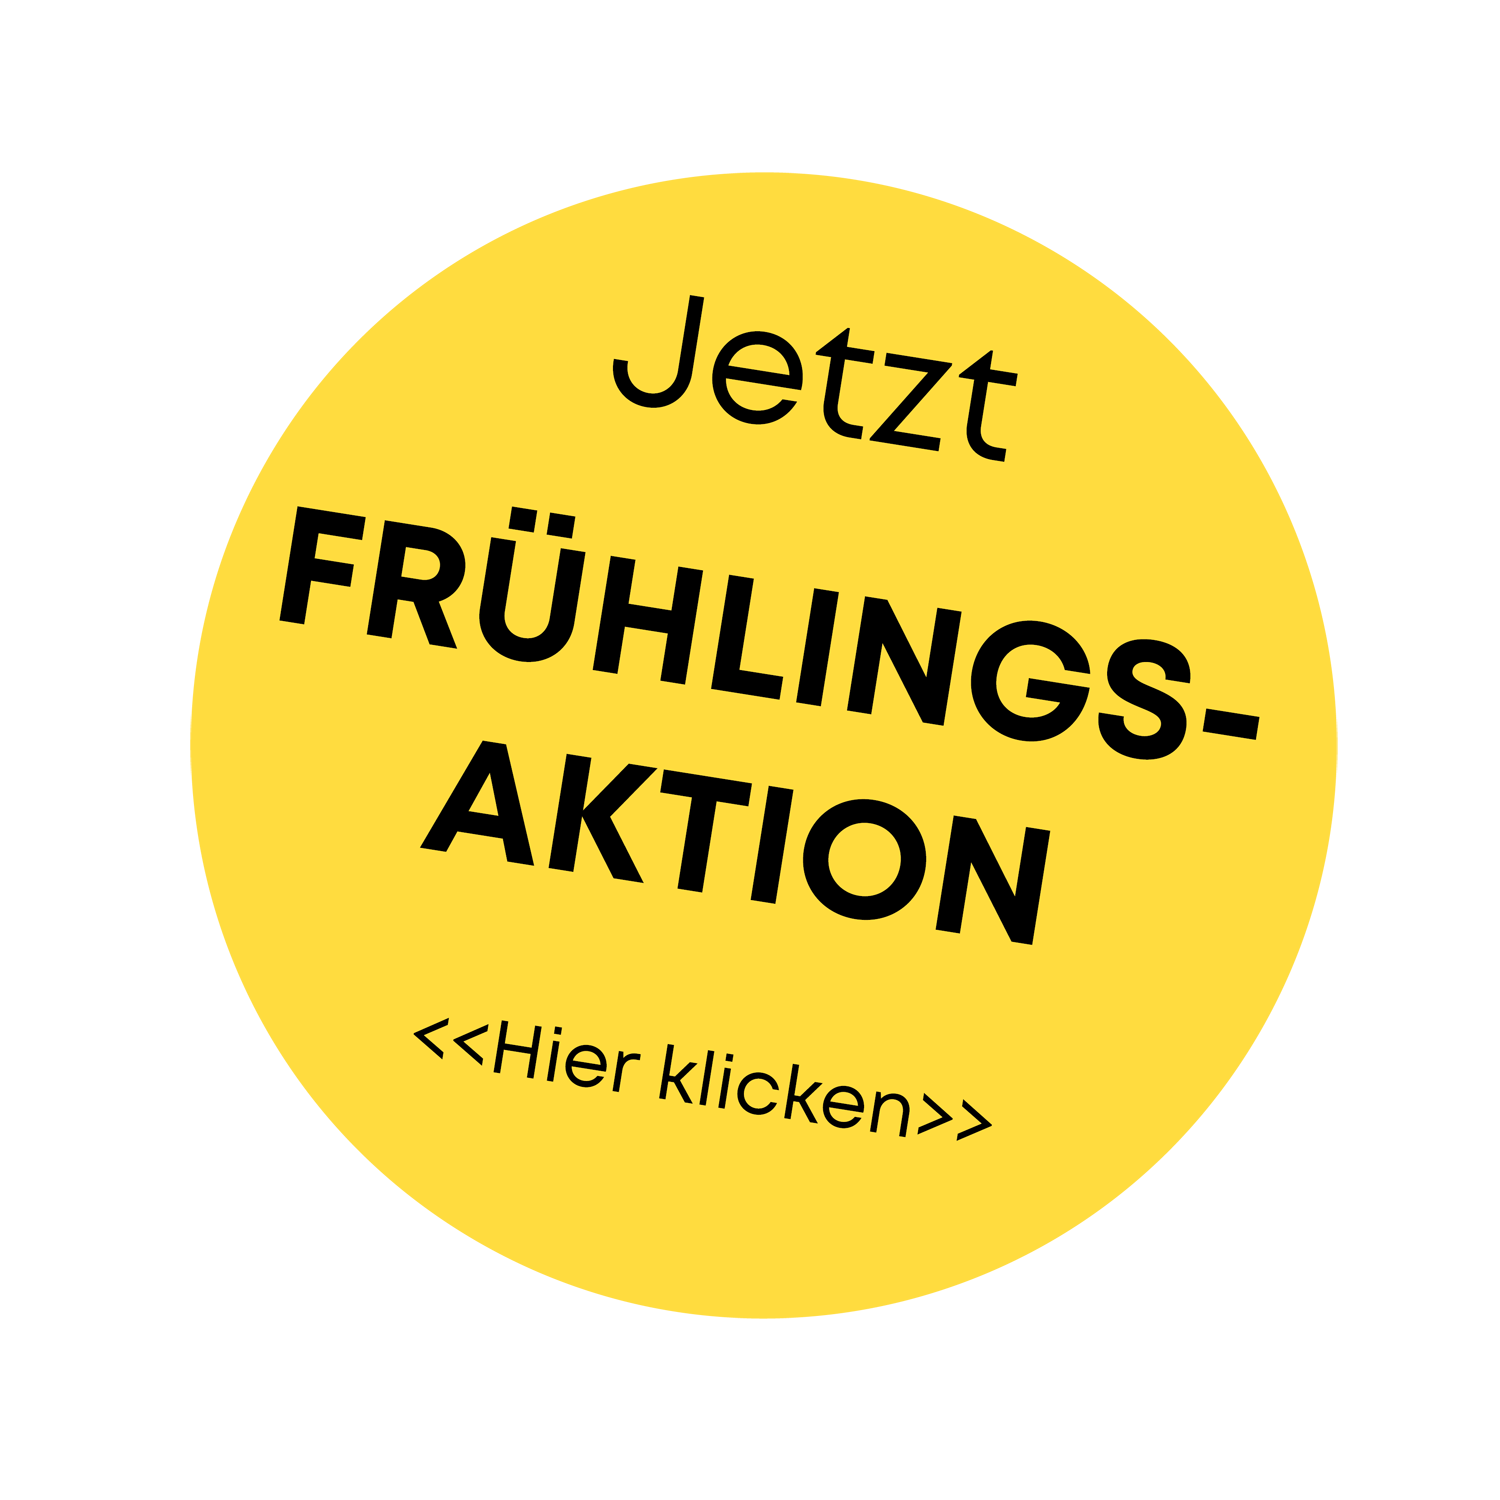 qc_Fruehlingsaktion_Button_Aktion_2_1616059259.png